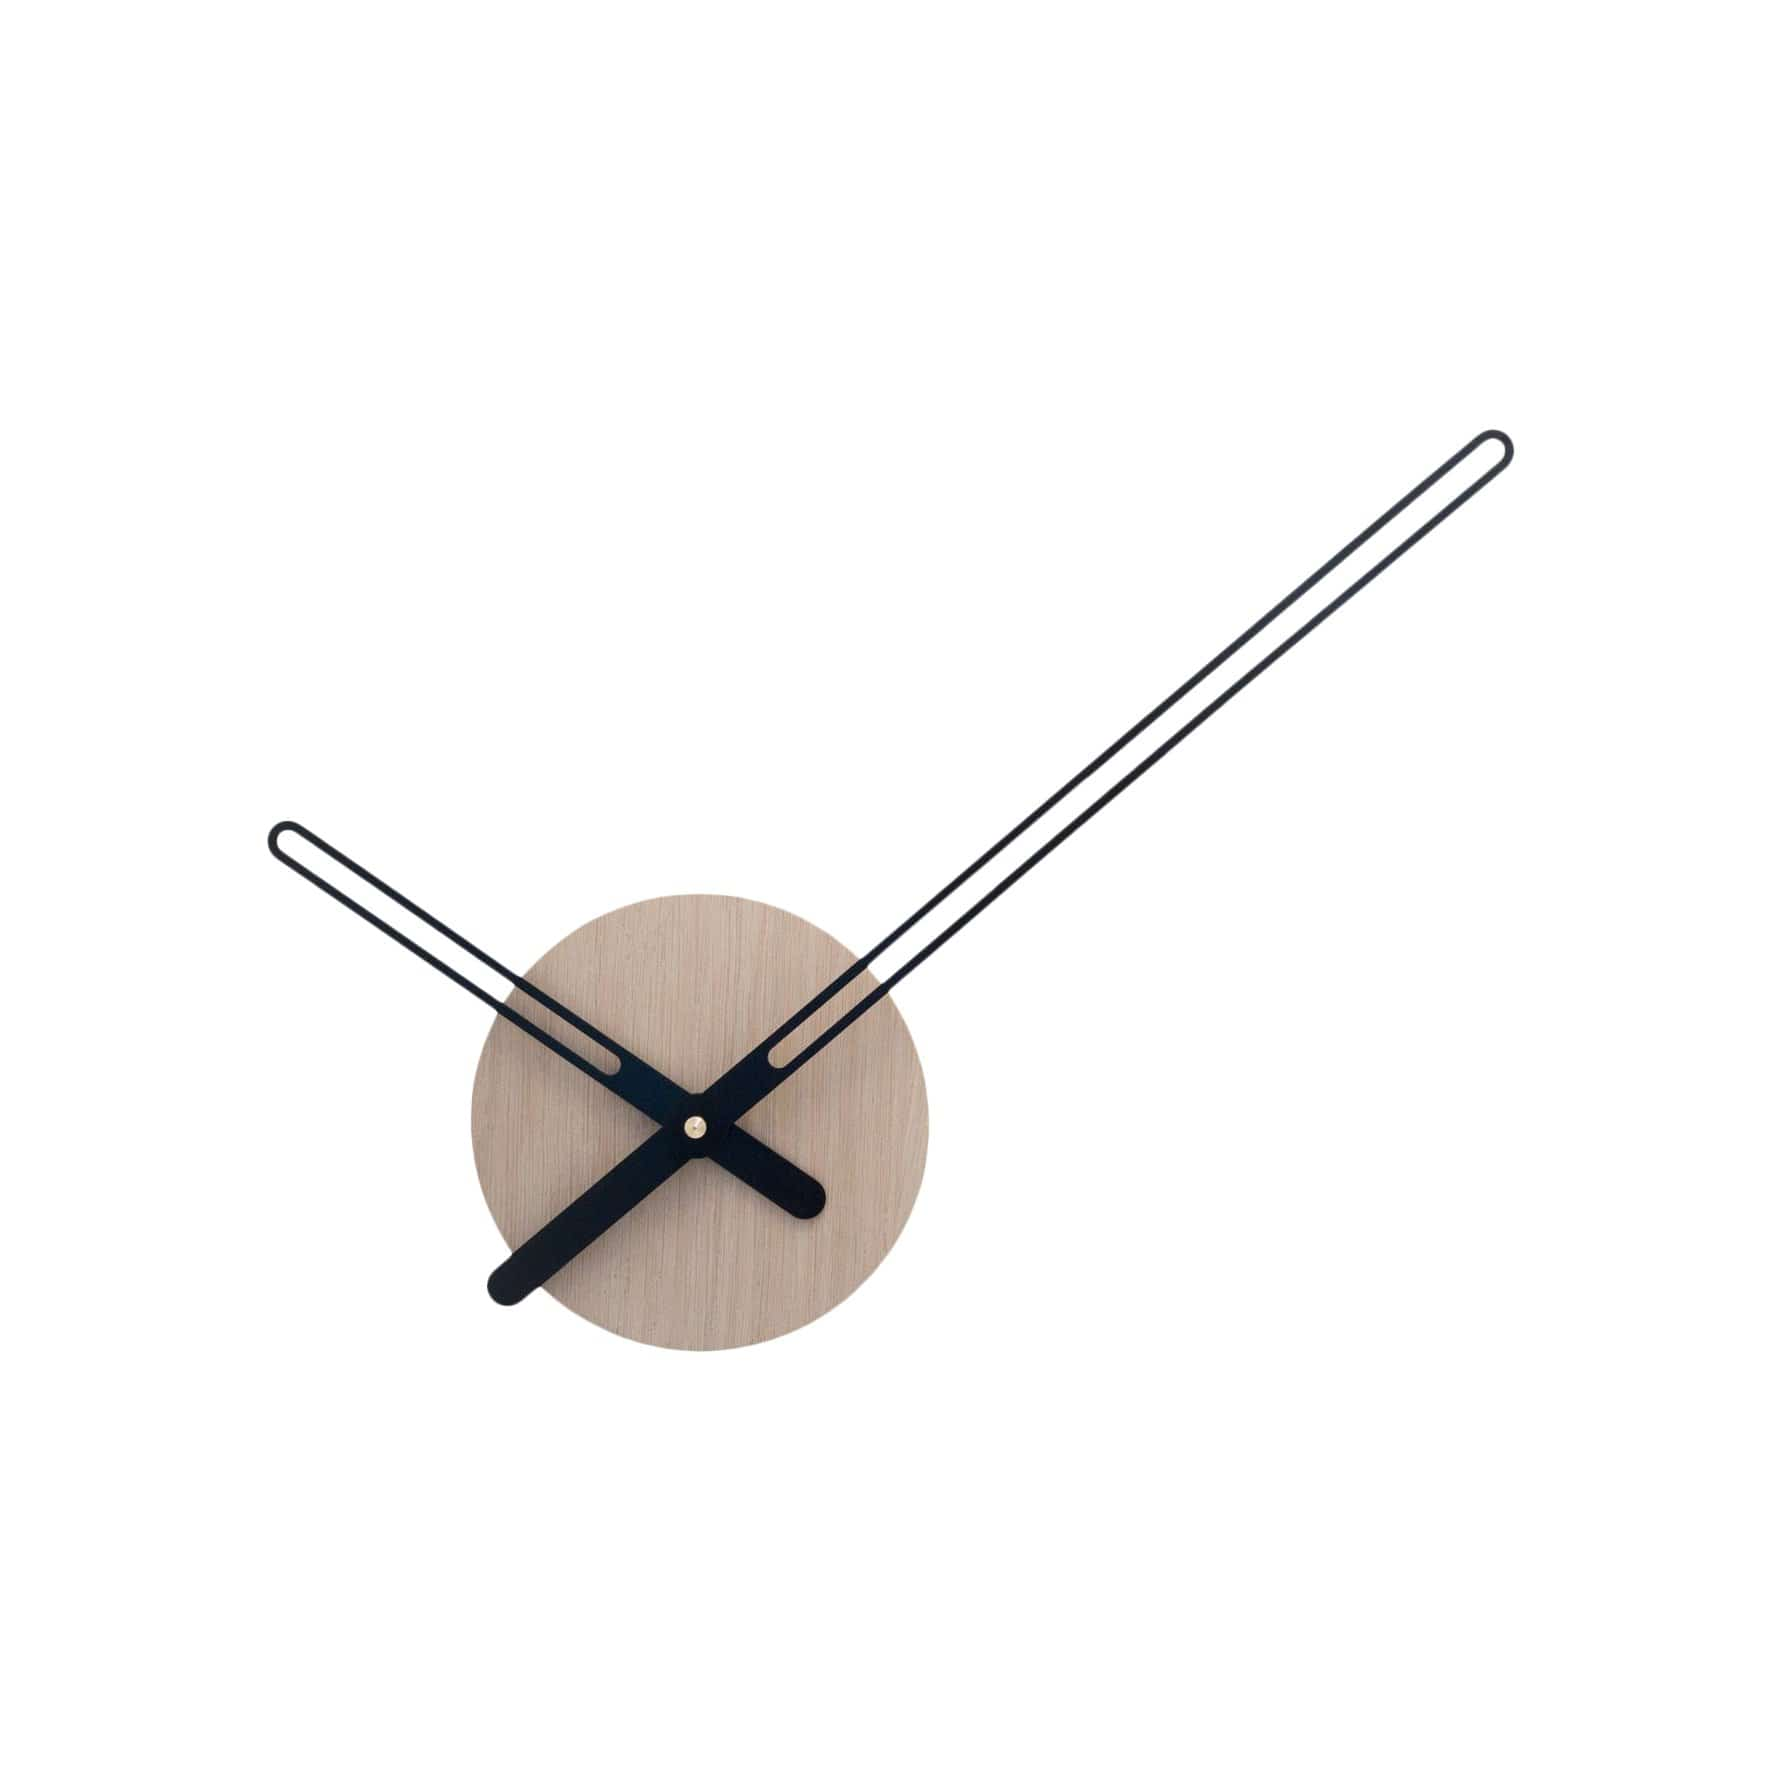 Nordahl Konings Clocks Sweep Oak Wood & Black Wall Clock